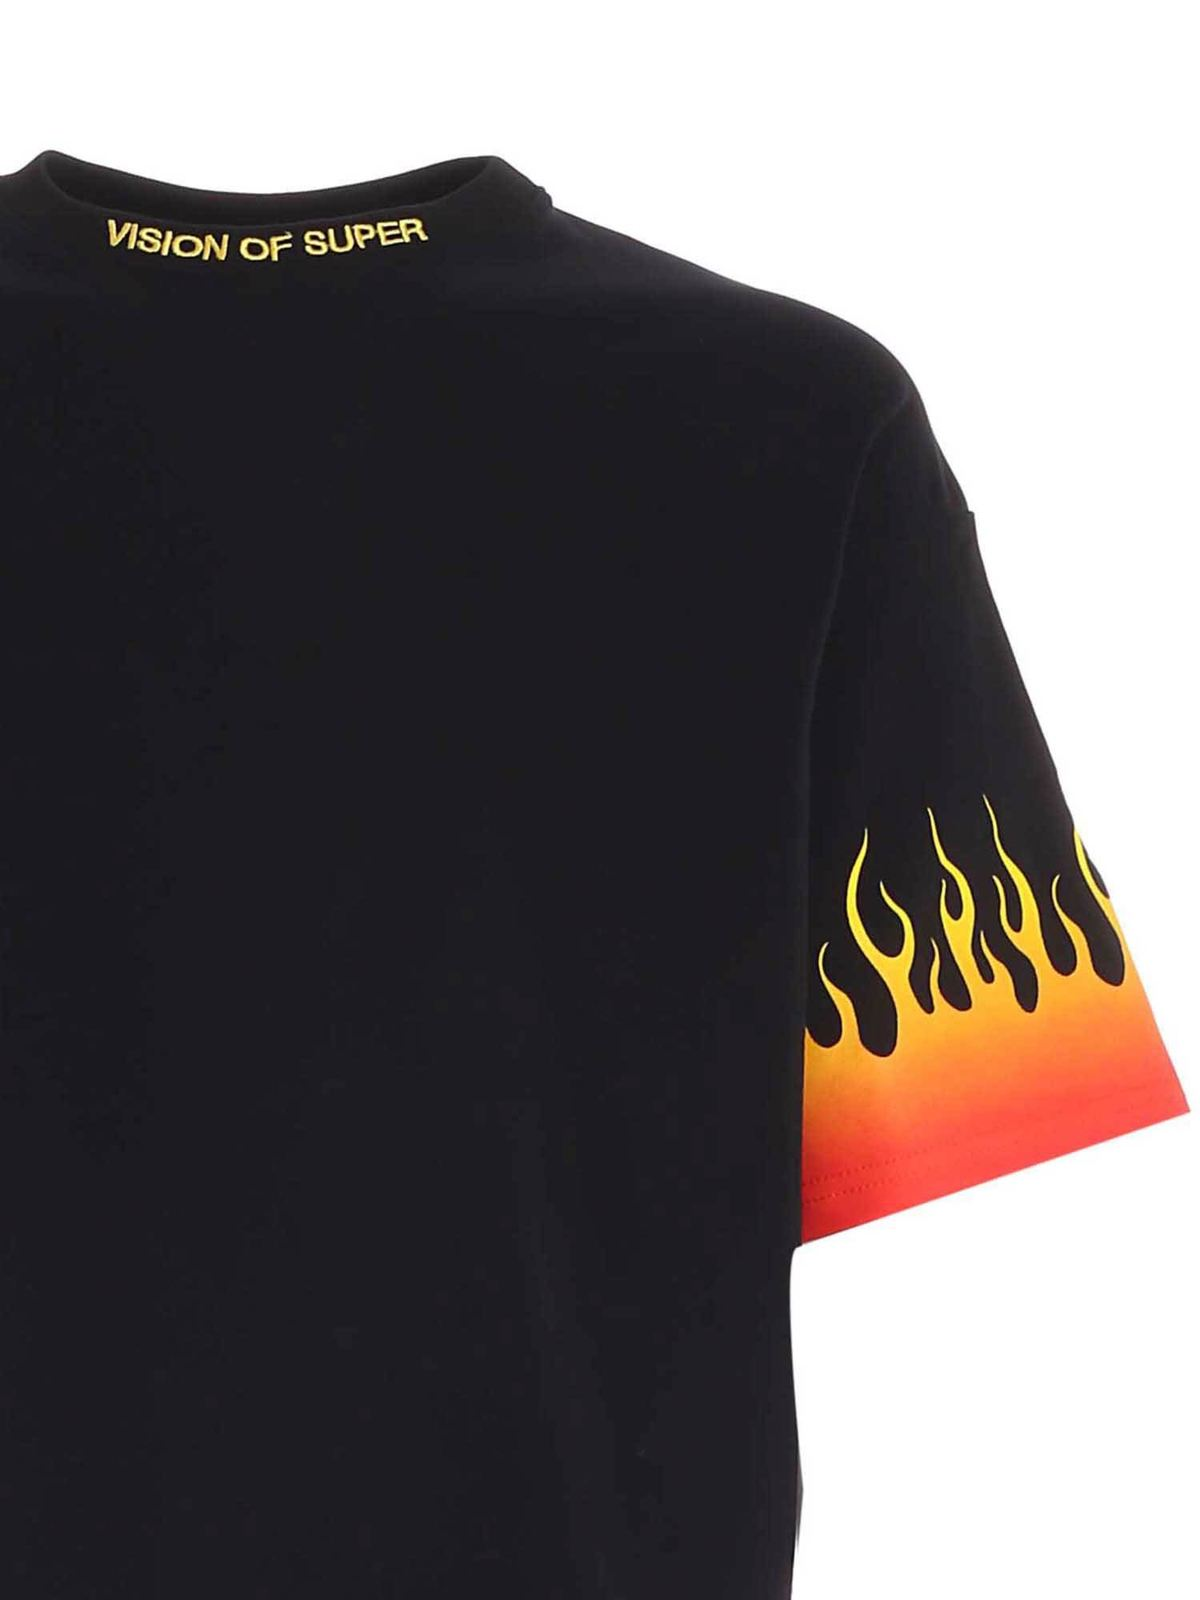 Immagine di Vision Of Super   Tshirt With Shaded Red Flames